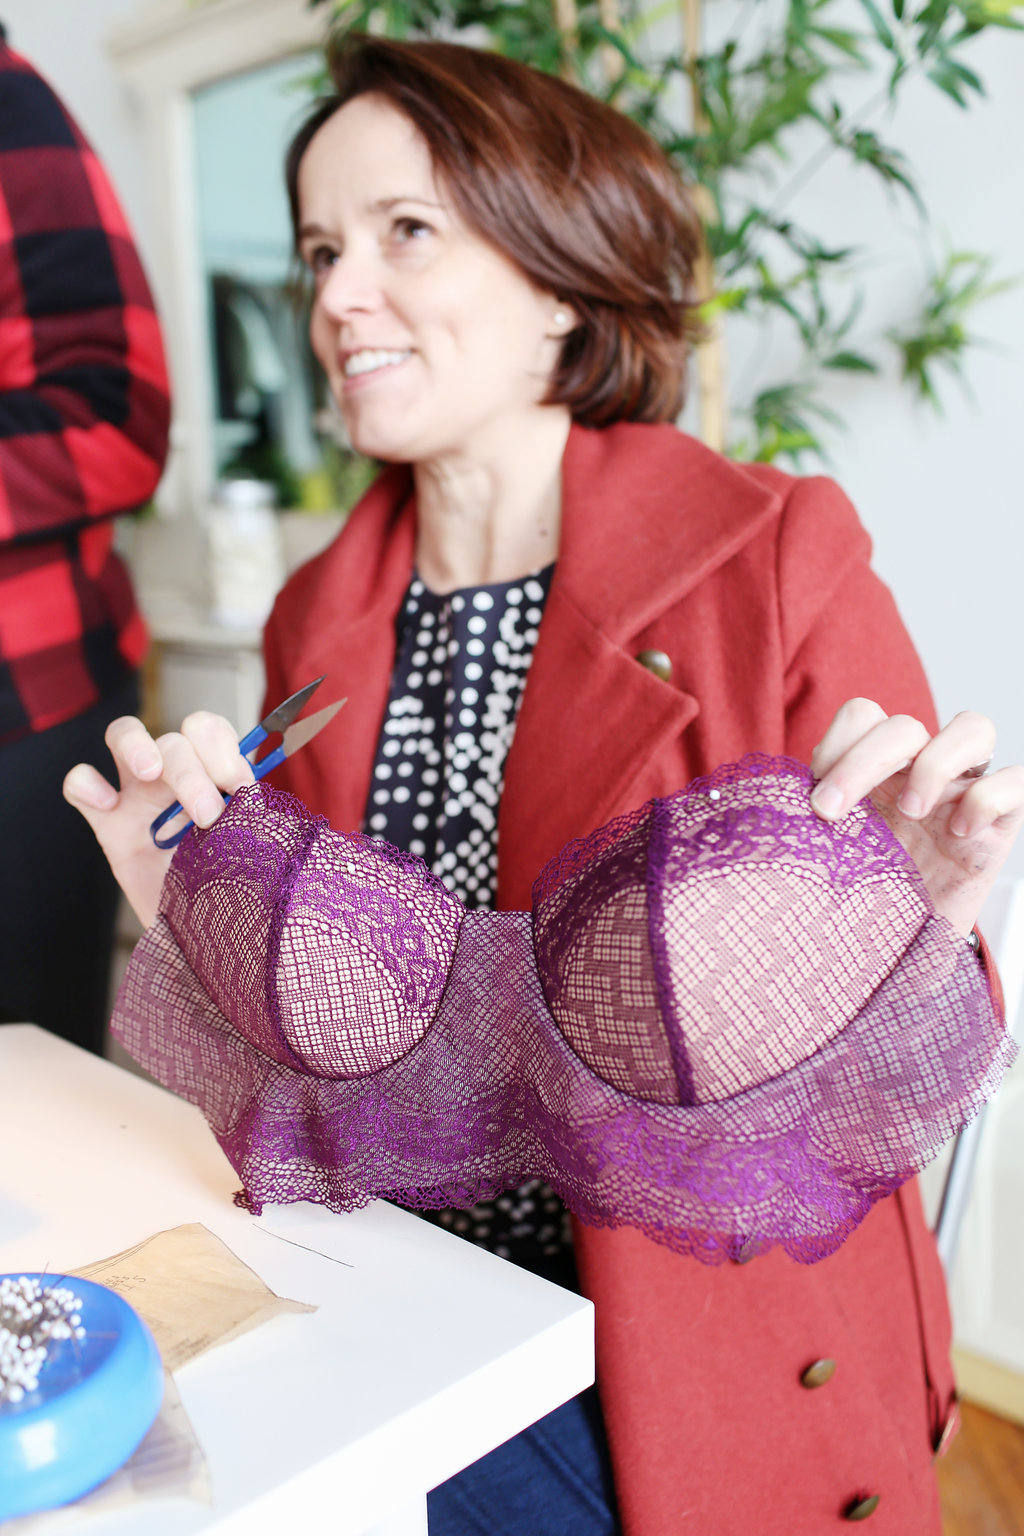 bra-making-madalynne-february-2017-51